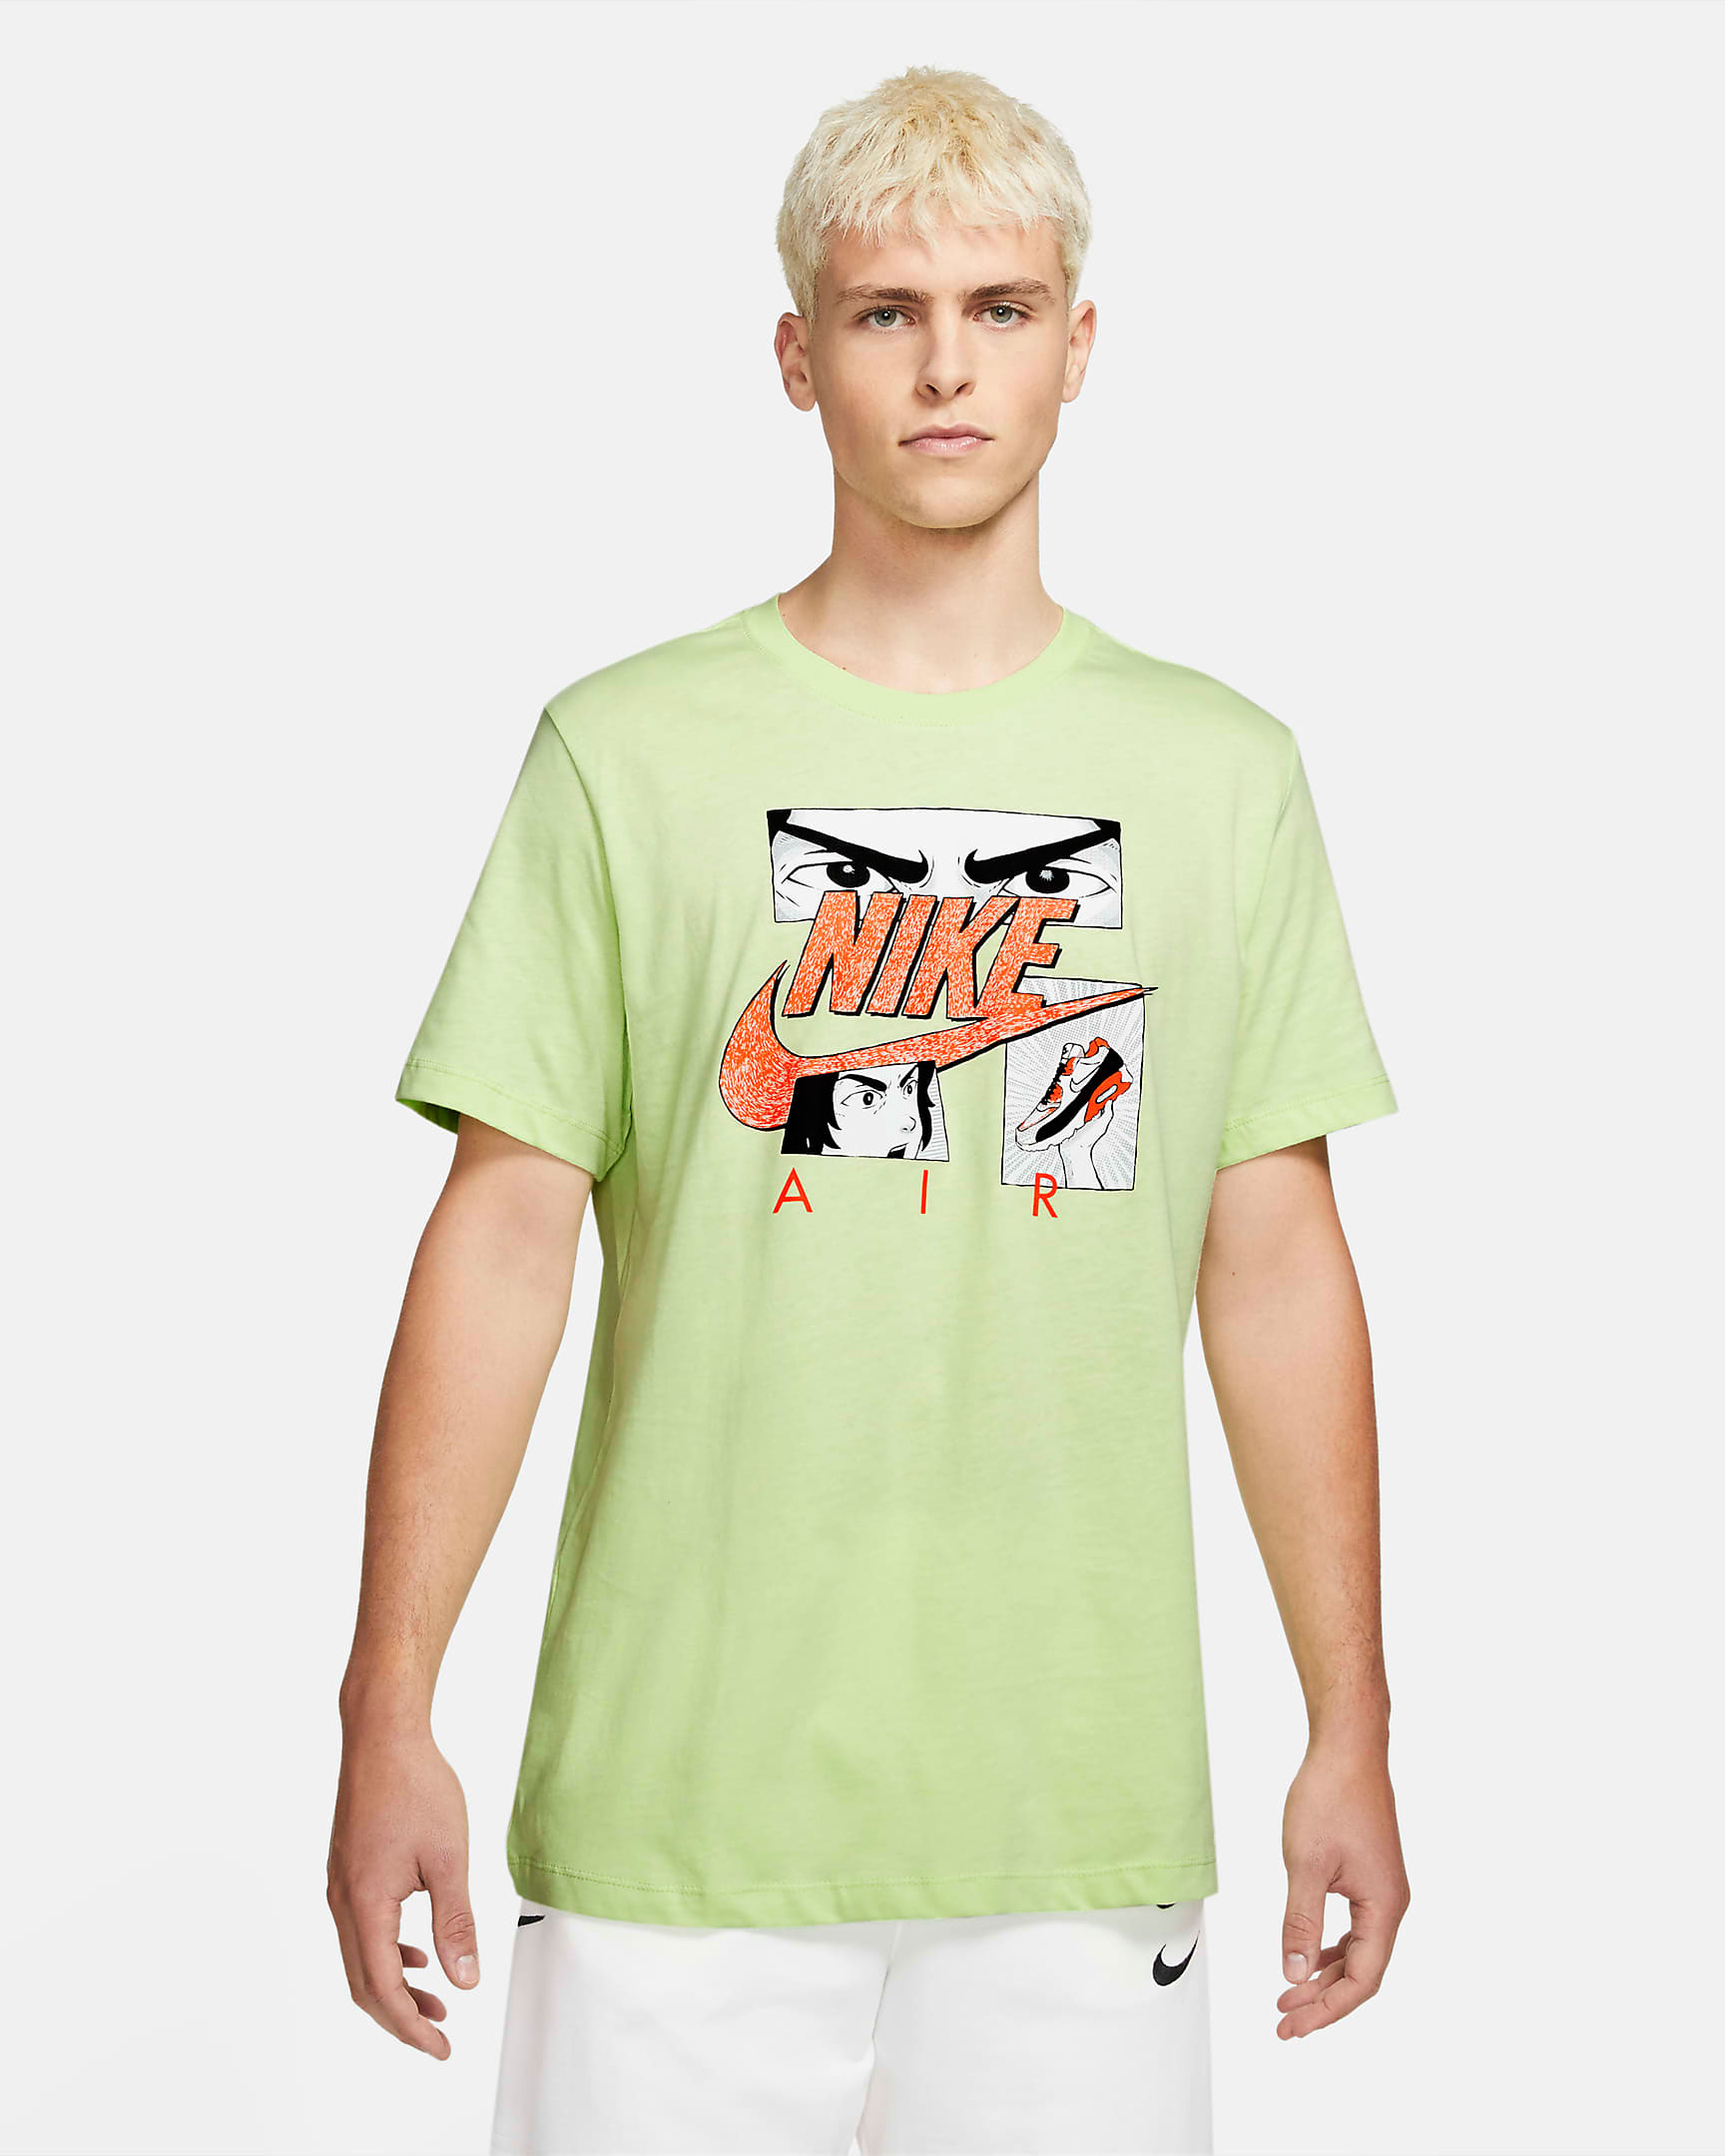 nike-light-liquid-lime-air-max-tee-shirt